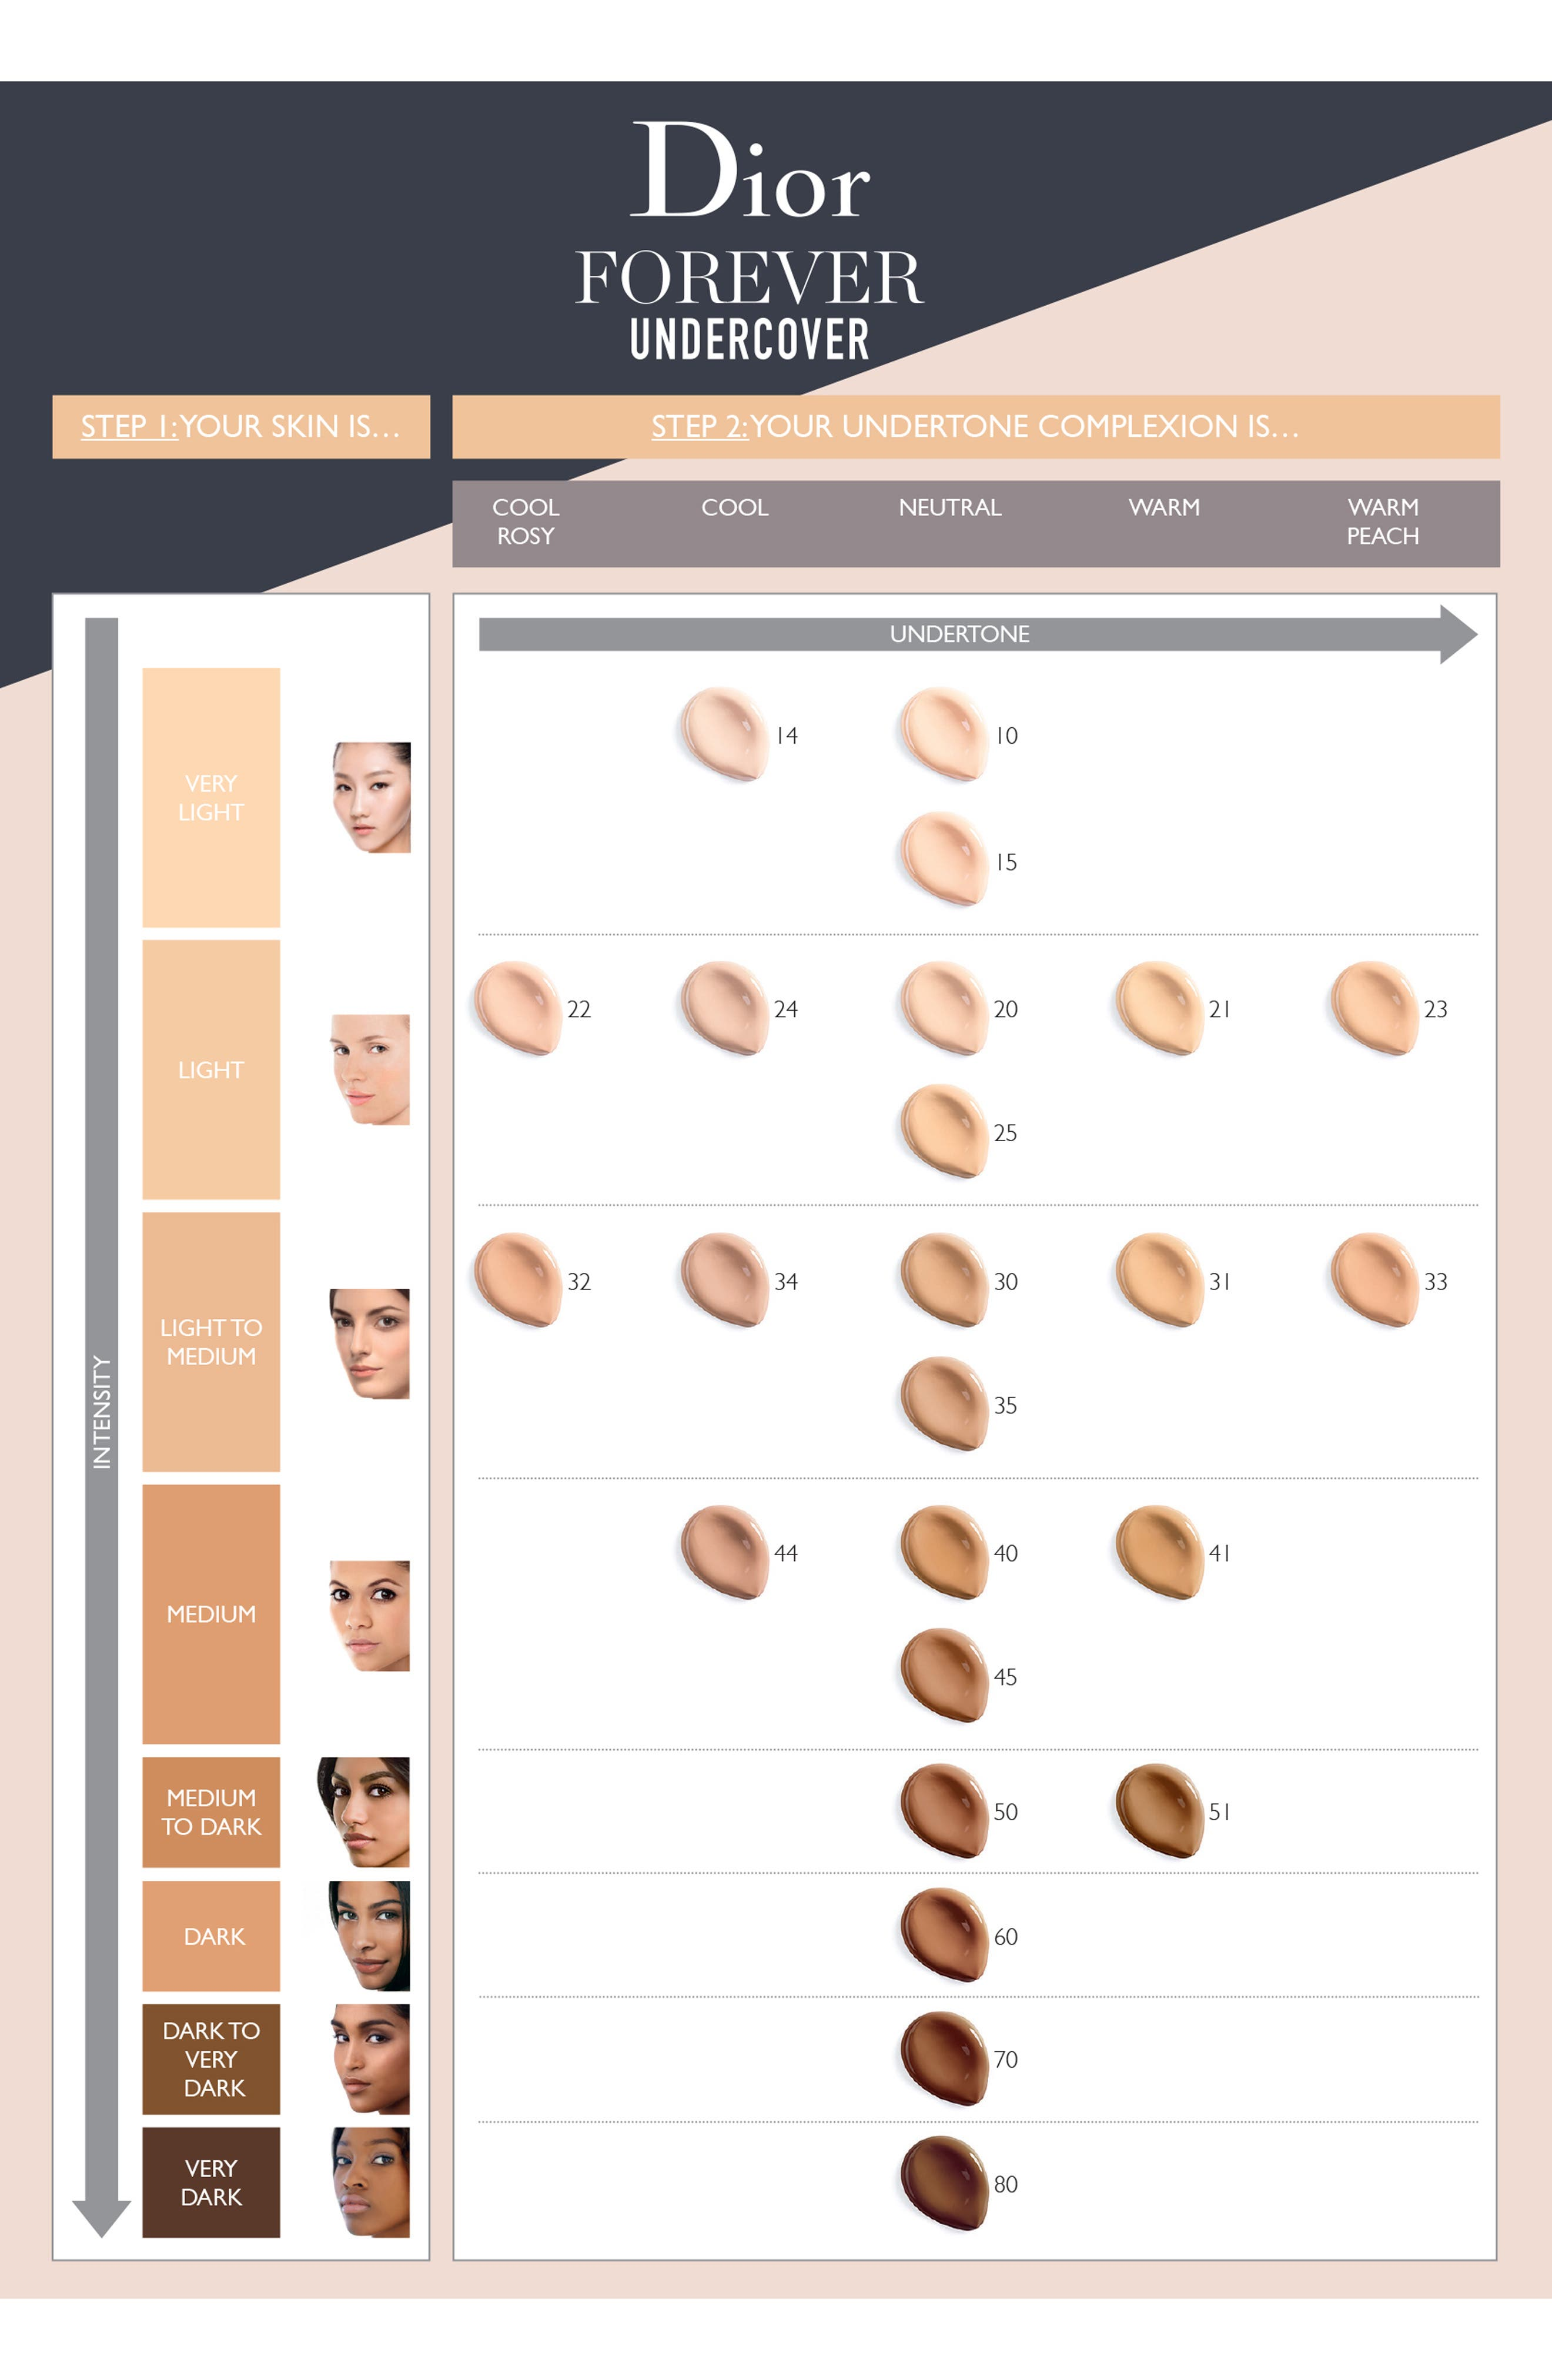 Diorskin Forever Undercover 24-Hour Full Coverage Water-Based Foundation,                             Alternate thumbnail 7, color,                             051 PRALINE